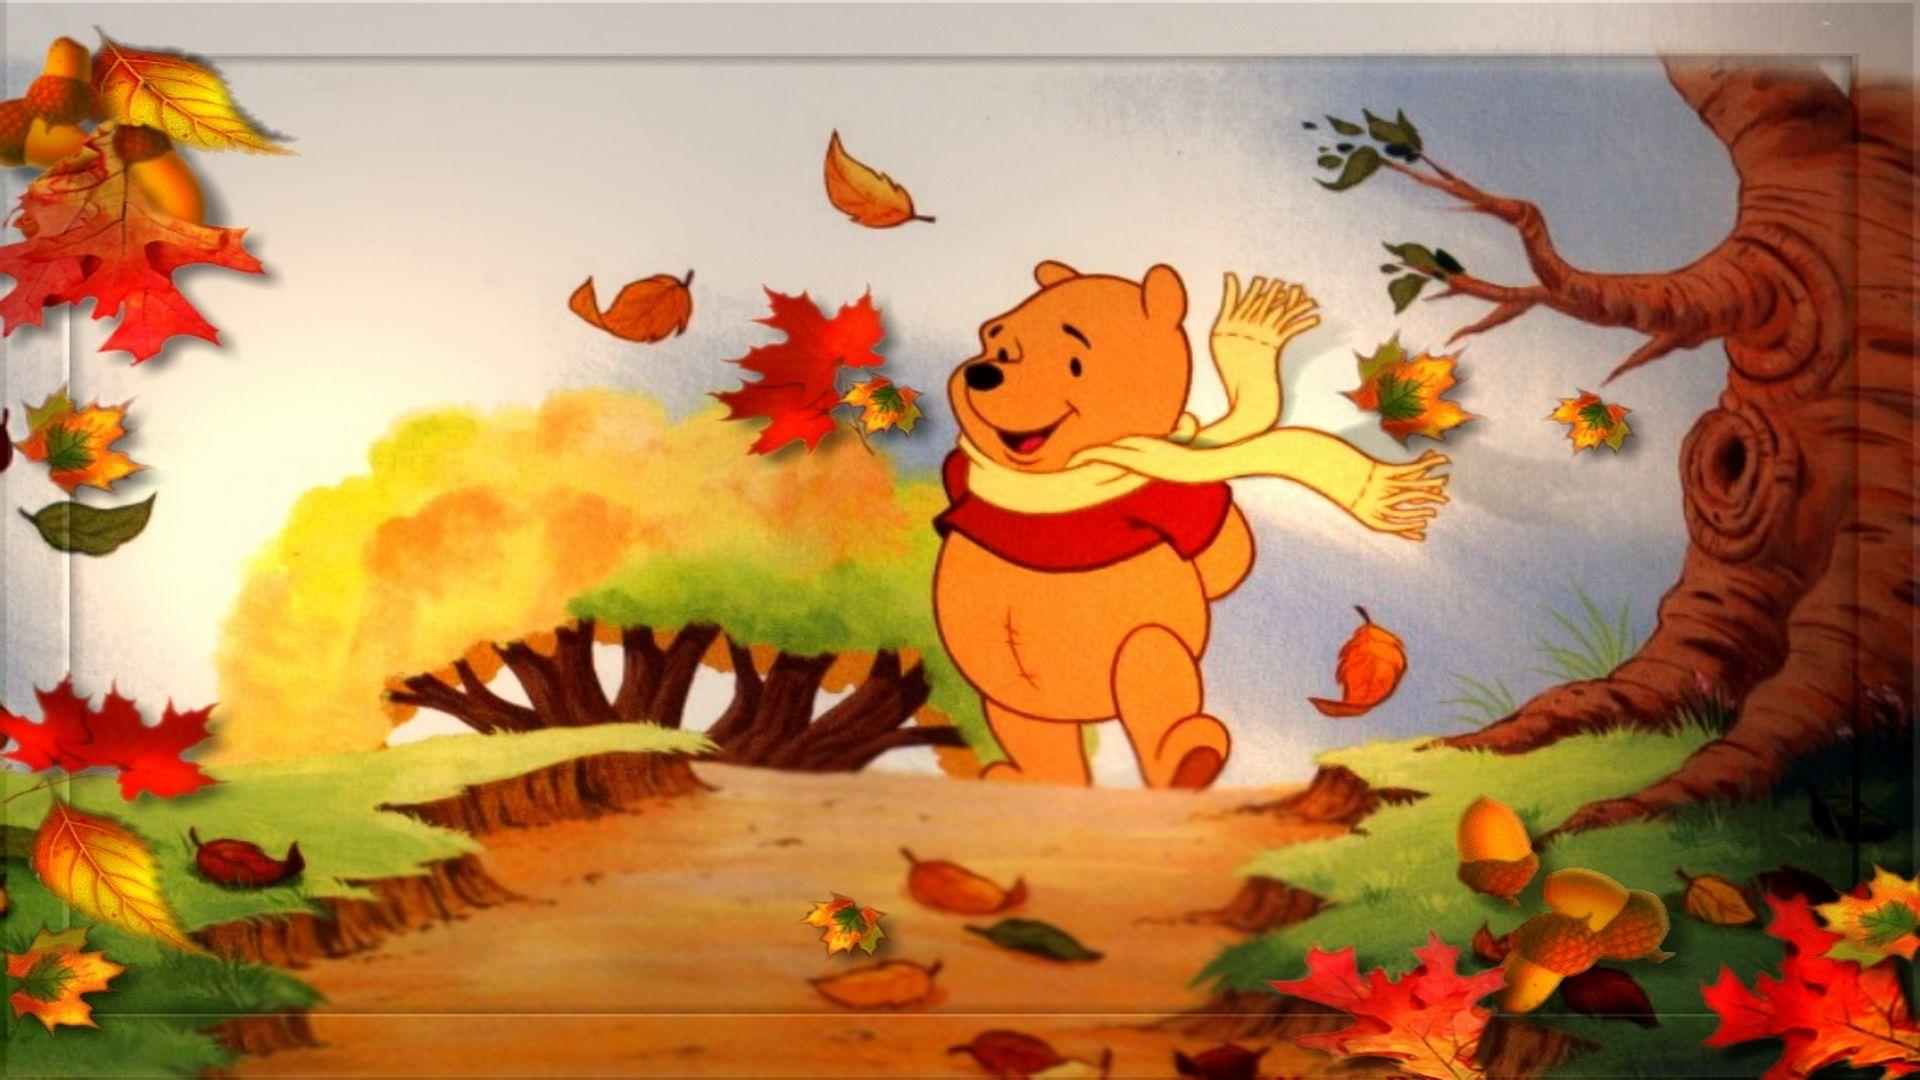 Free Disney Thanksgiving Wallpaper Backgrounds « Long Wallpapers